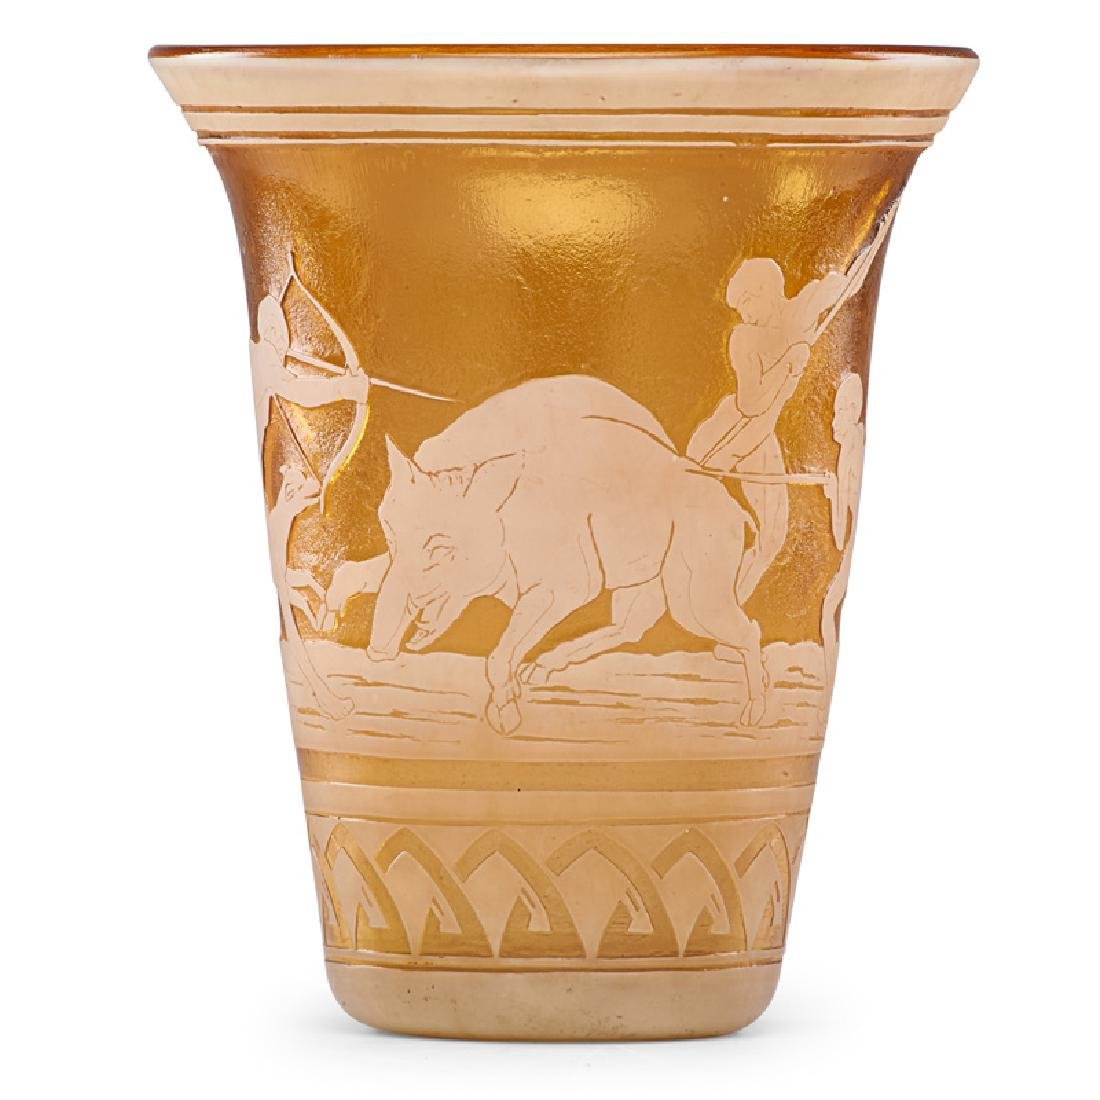 MULLER FRERES Large vase with hunting scene